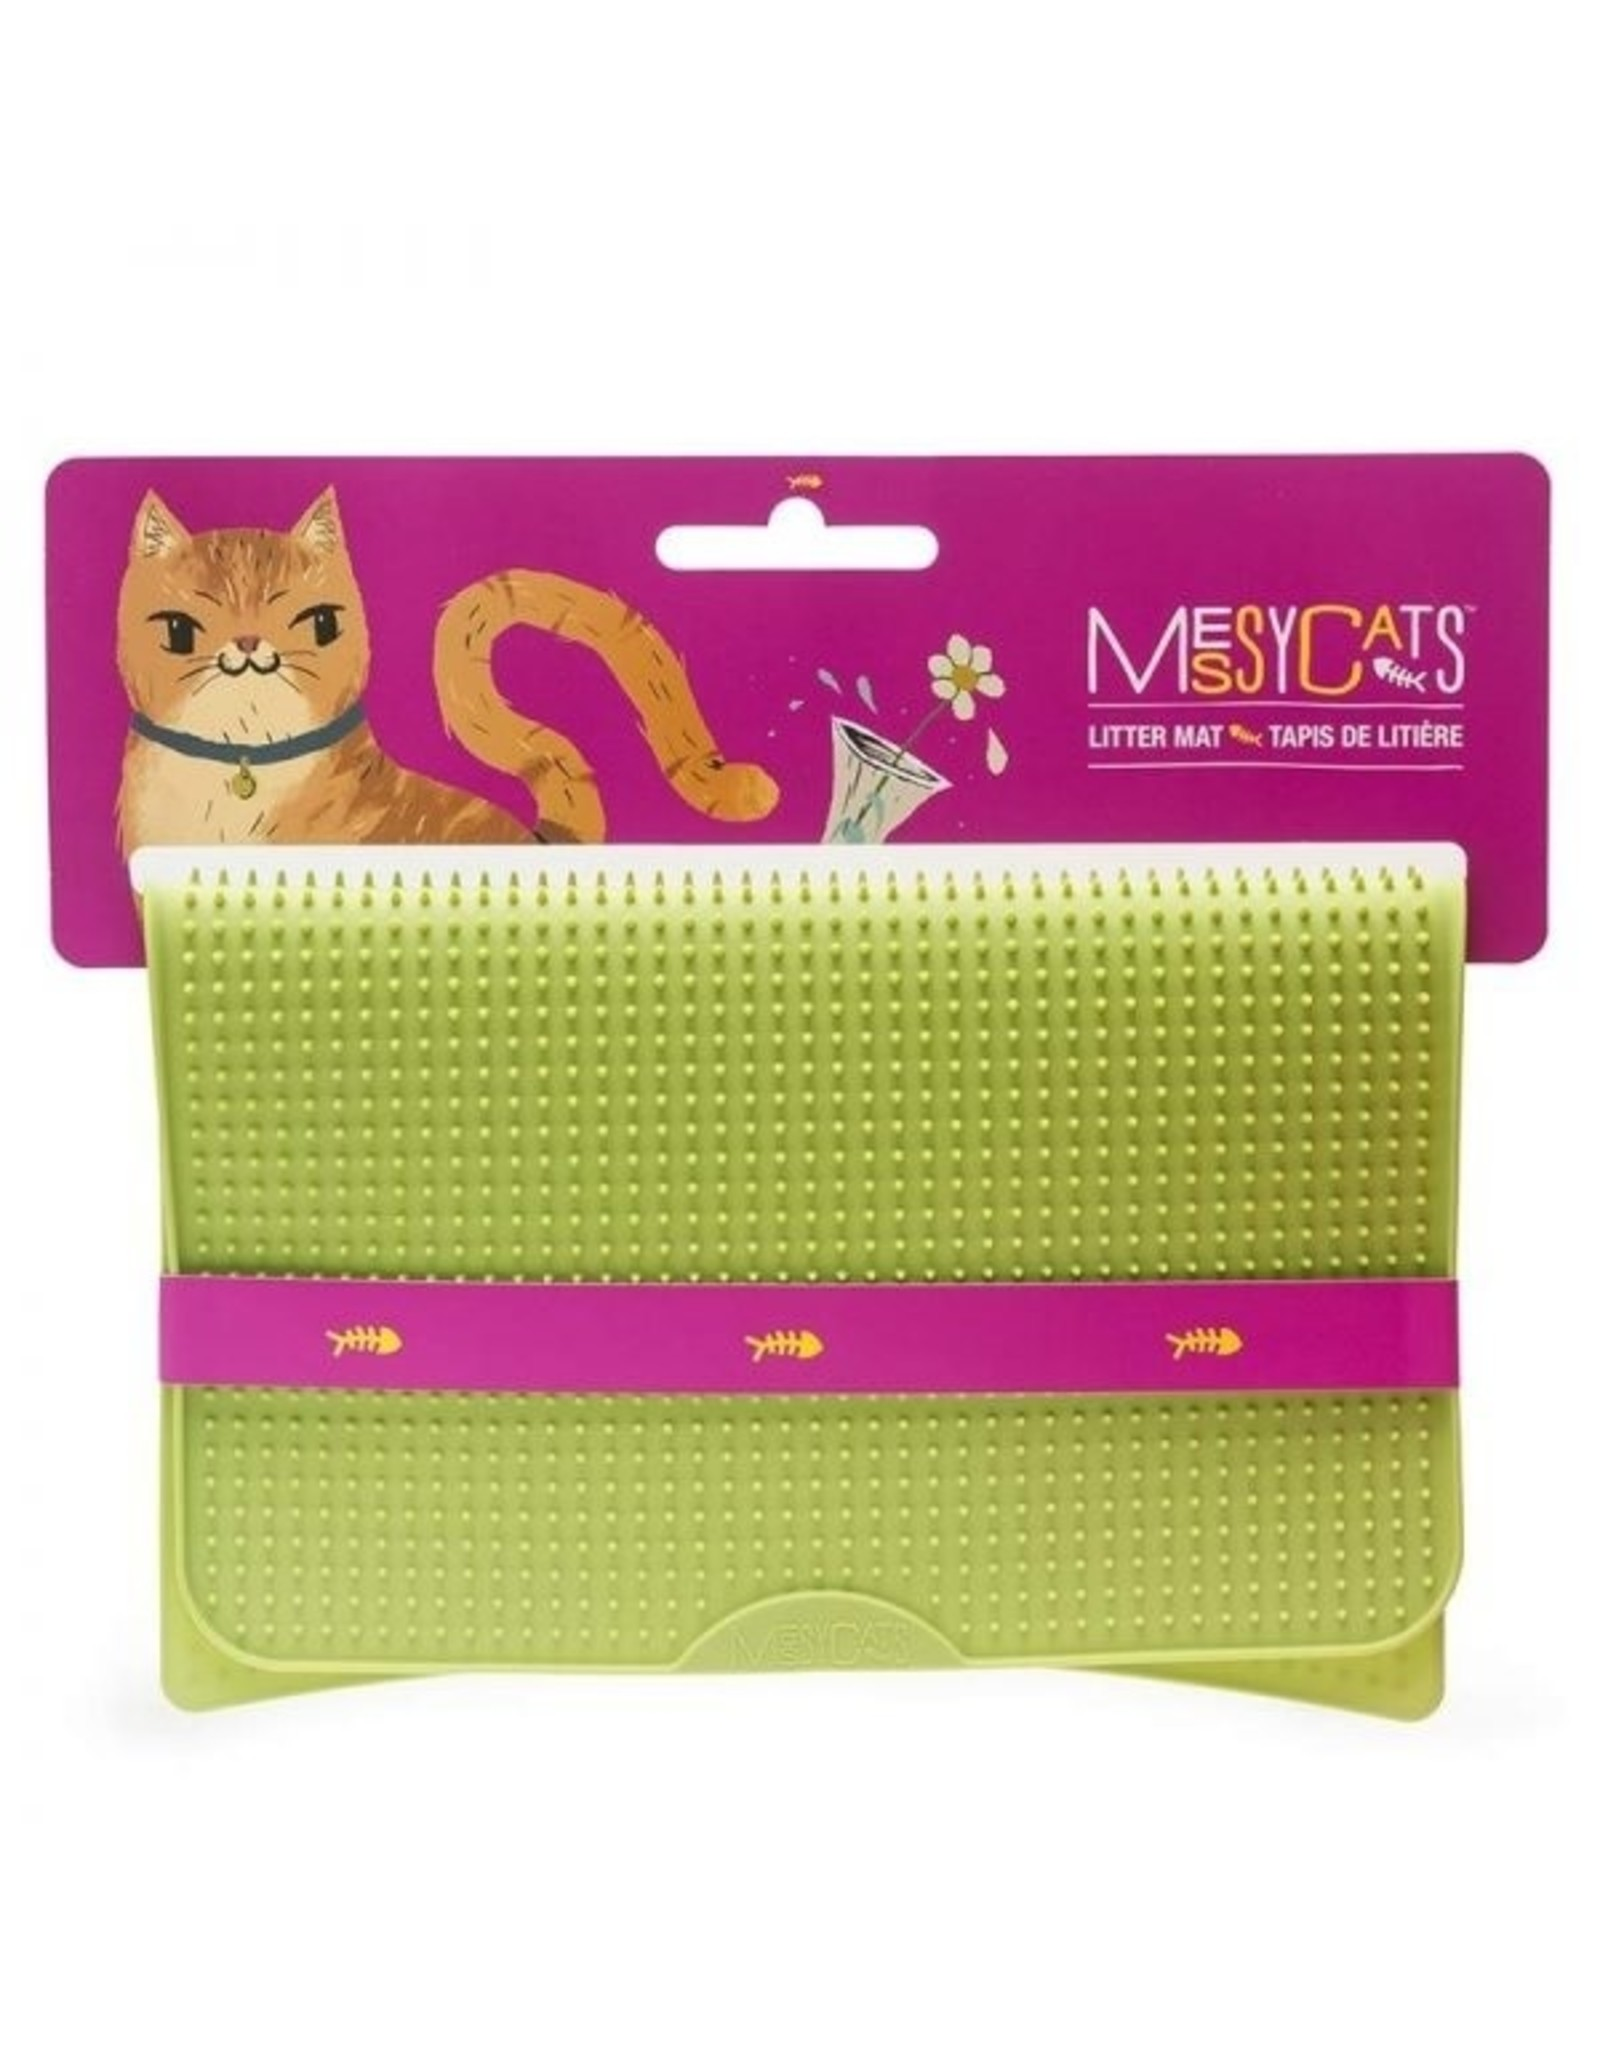 Messy Cats MESSY CATS tapis litiere silicone, vert